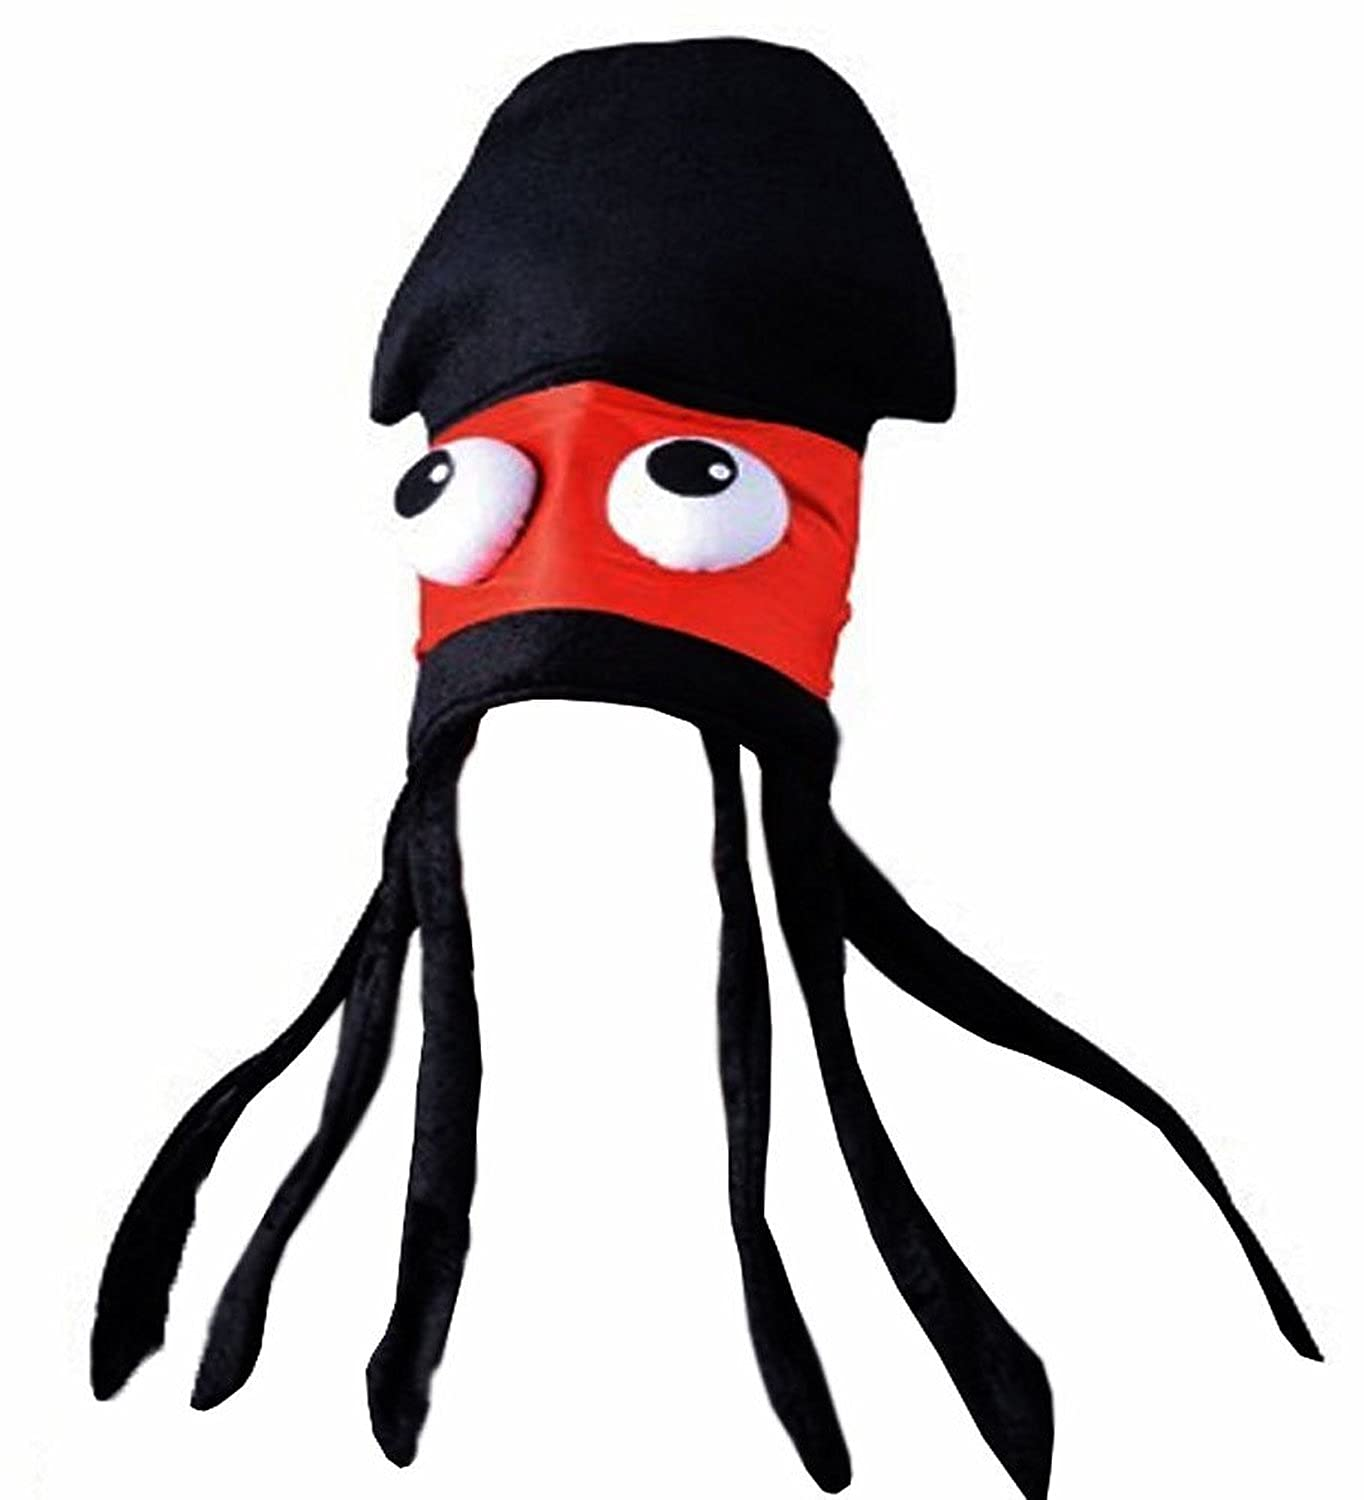 amazoncom squid hat squid costumes ninja squid hat novelty hats fish hats costume hat by funny party hats clothing